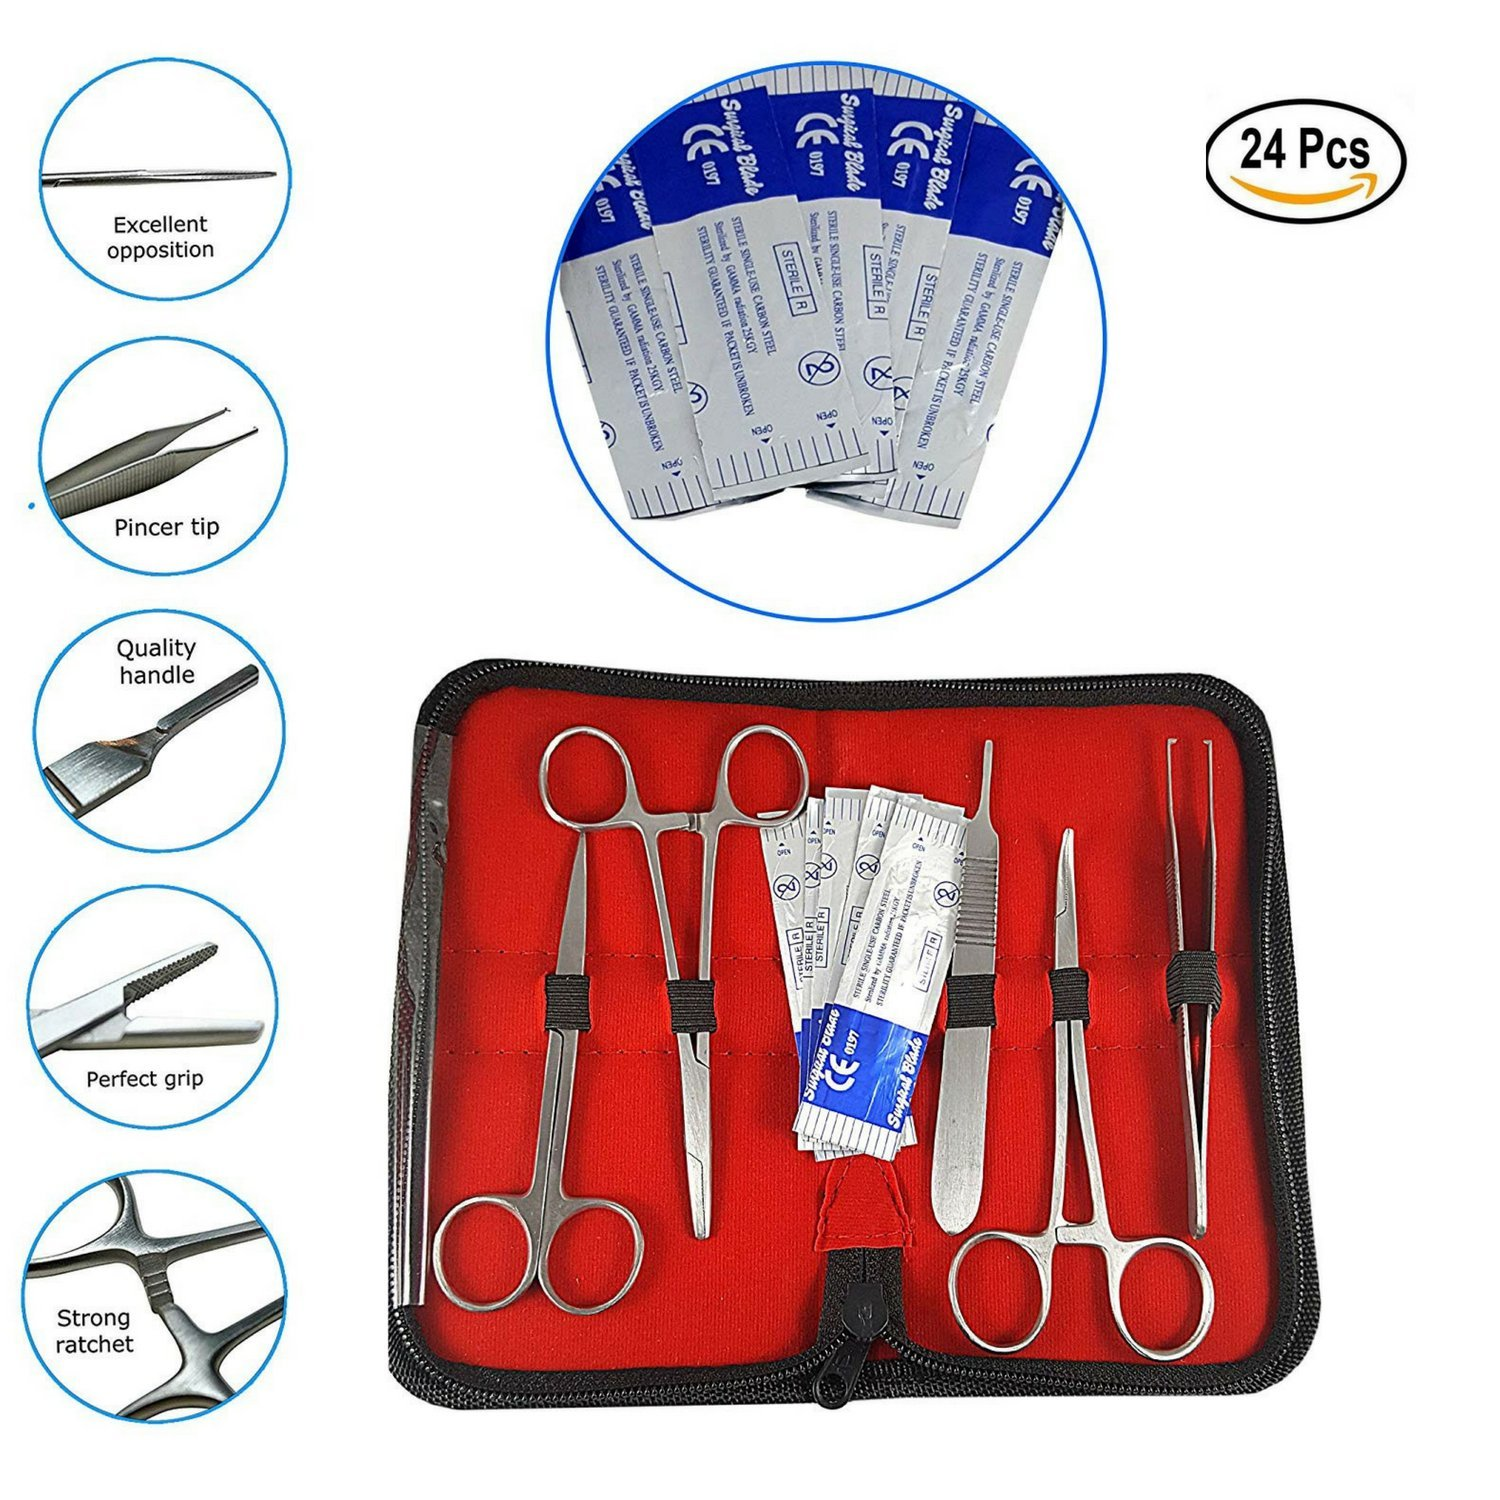 Suture Kit with Needles - Suture Practice Kit Includes Suture Pad,Sterile Sutures,Needle Driver|24 Piece|Stitch kit for Anatomy & Science Classes,Veterinary Students Hospital Training Kit, Nurses